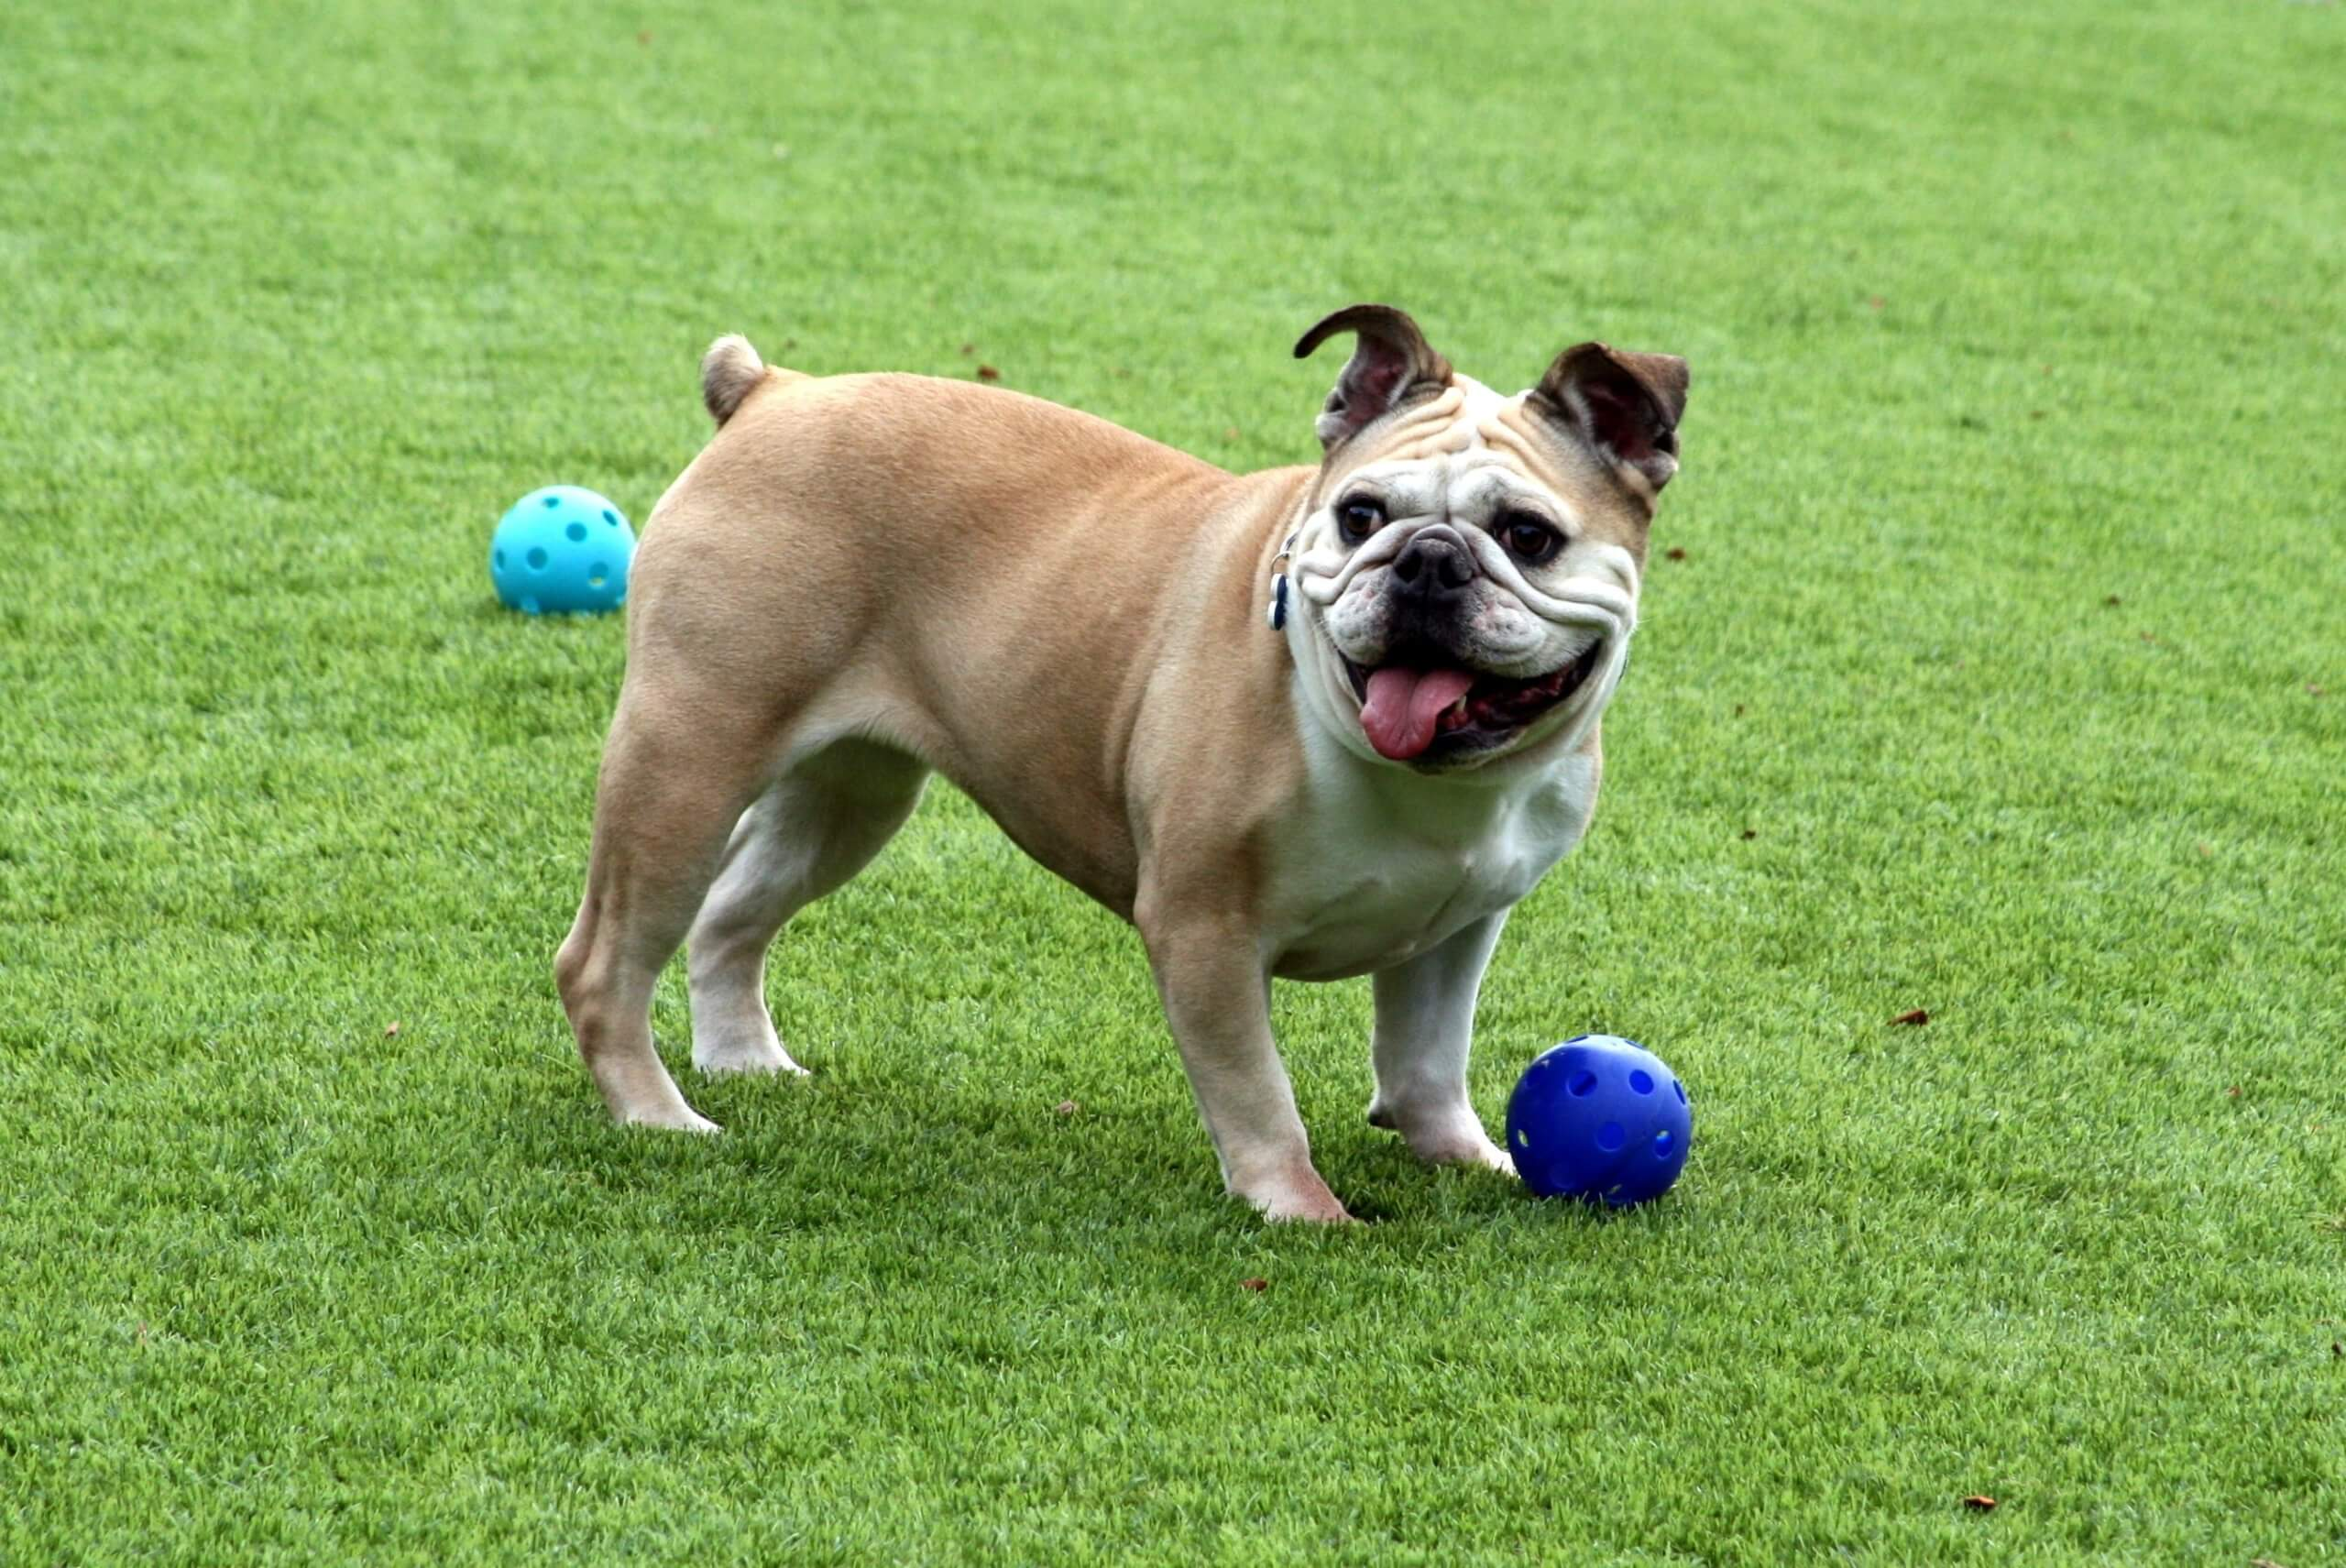 dog bully playing ball on artificial grass